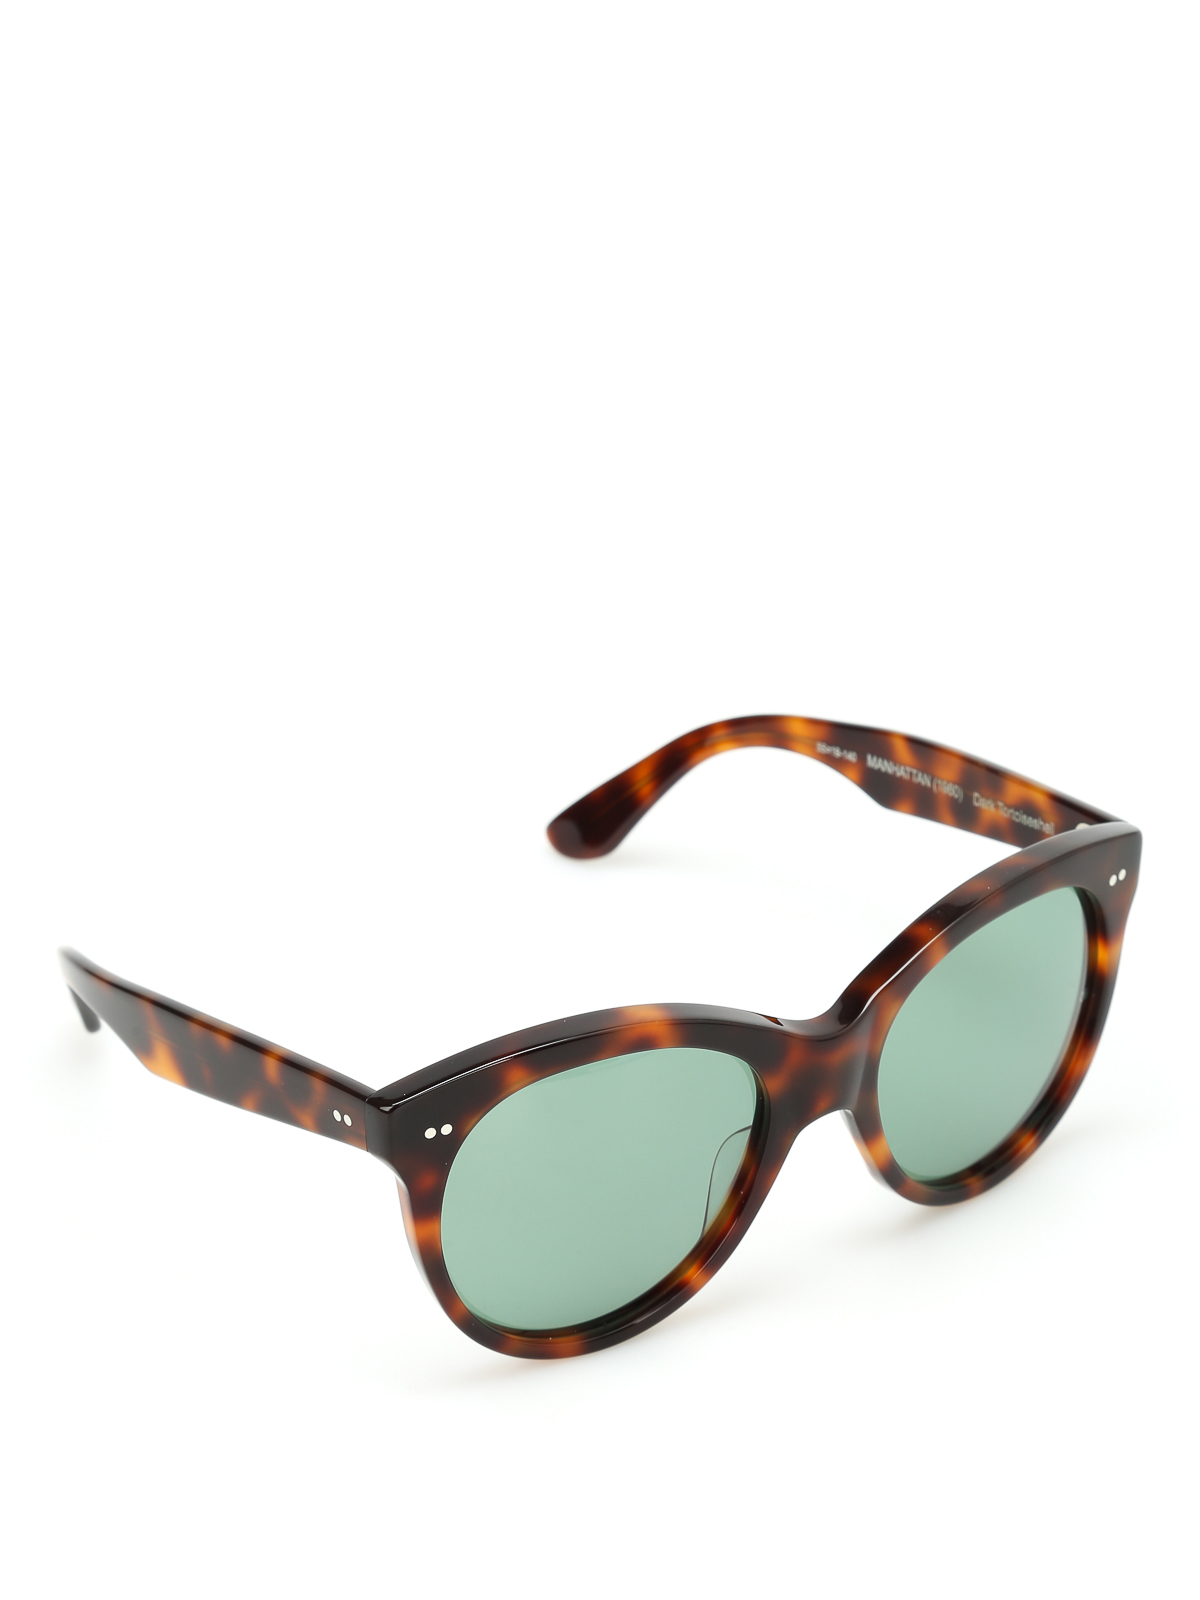 23c5c12276c Oliver Goldsmith - Manhattan cat eye sunglasses - sunglasses ...